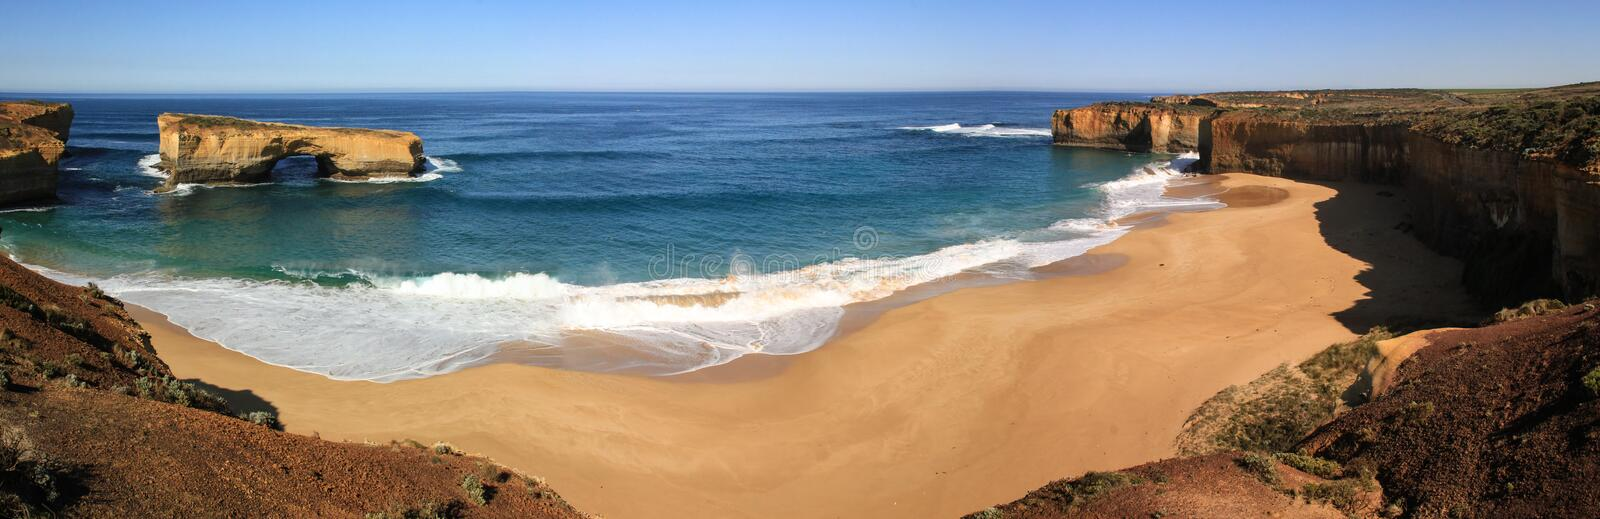 Panoramic view on the London Arch and beach, Great Ocean Road, Victoria, Australia royalty free stock photos